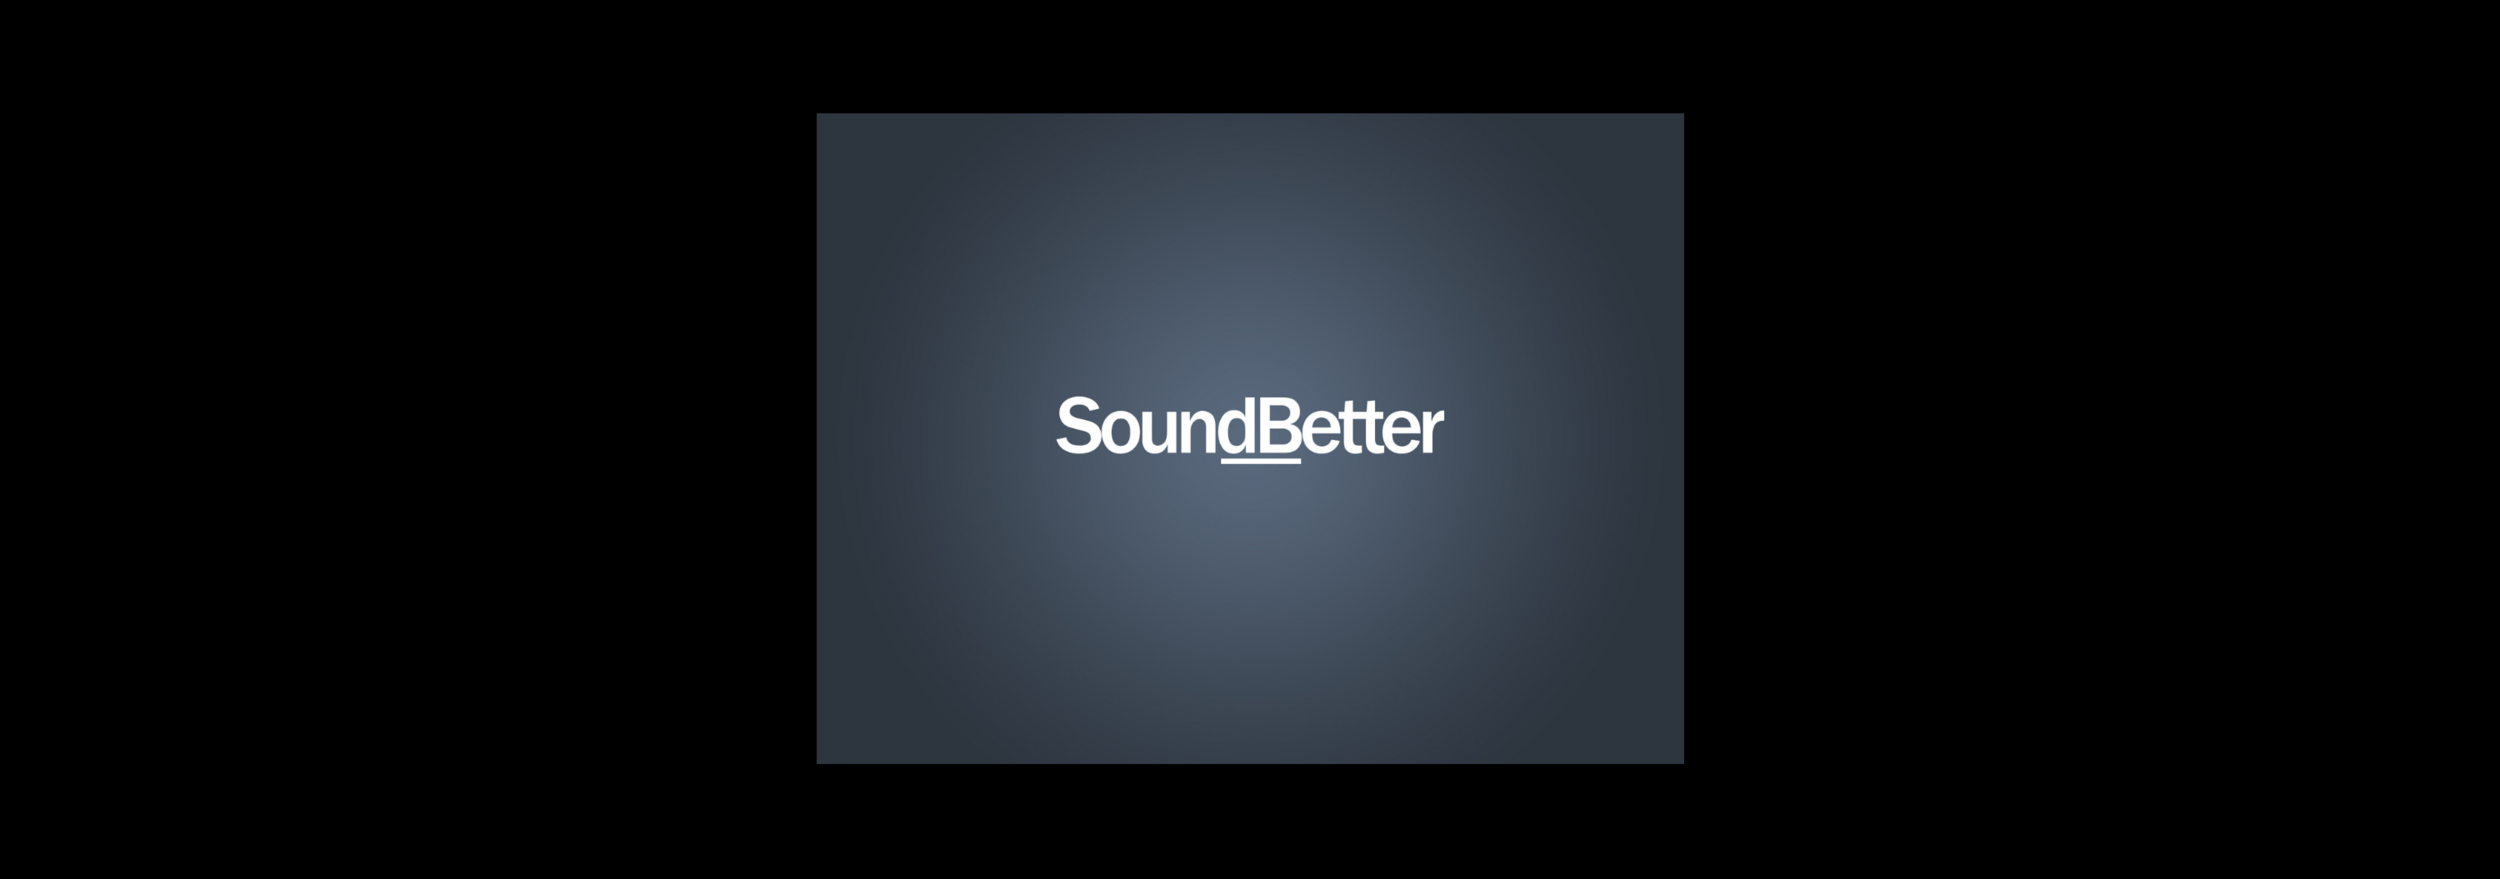 soundbetter producer.png